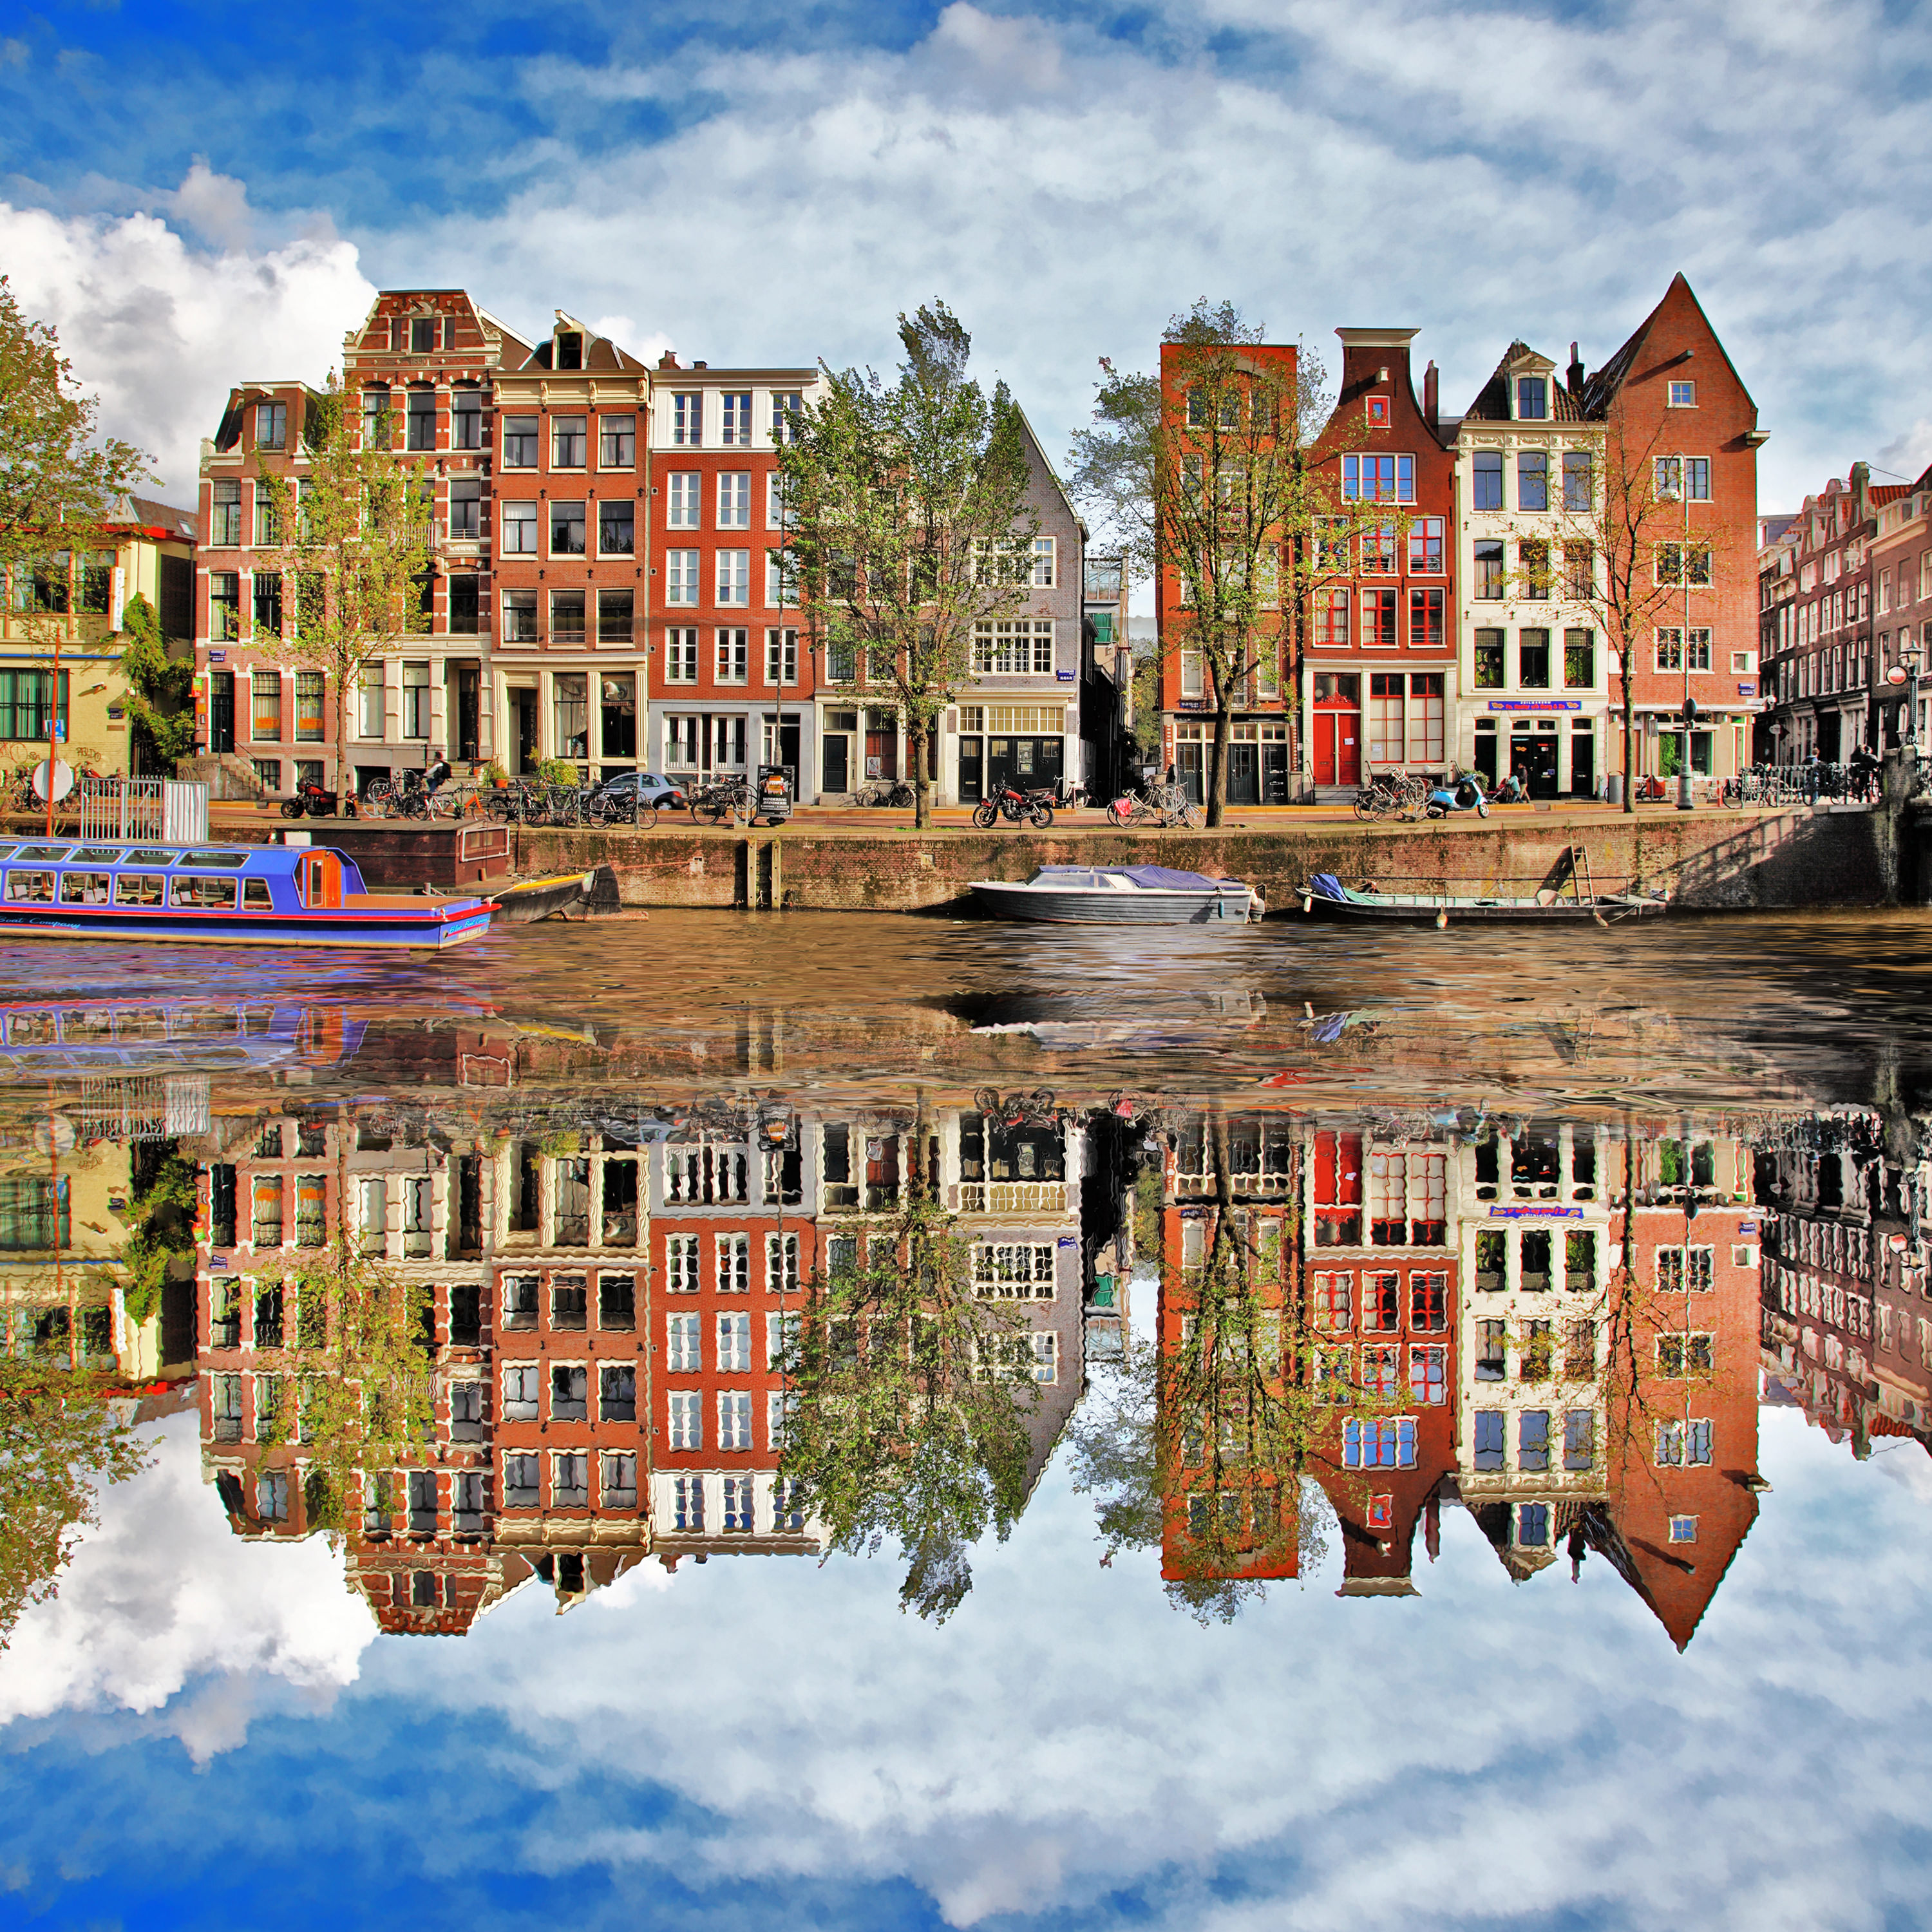 You can see why pretty Amsterdam is top of the list.